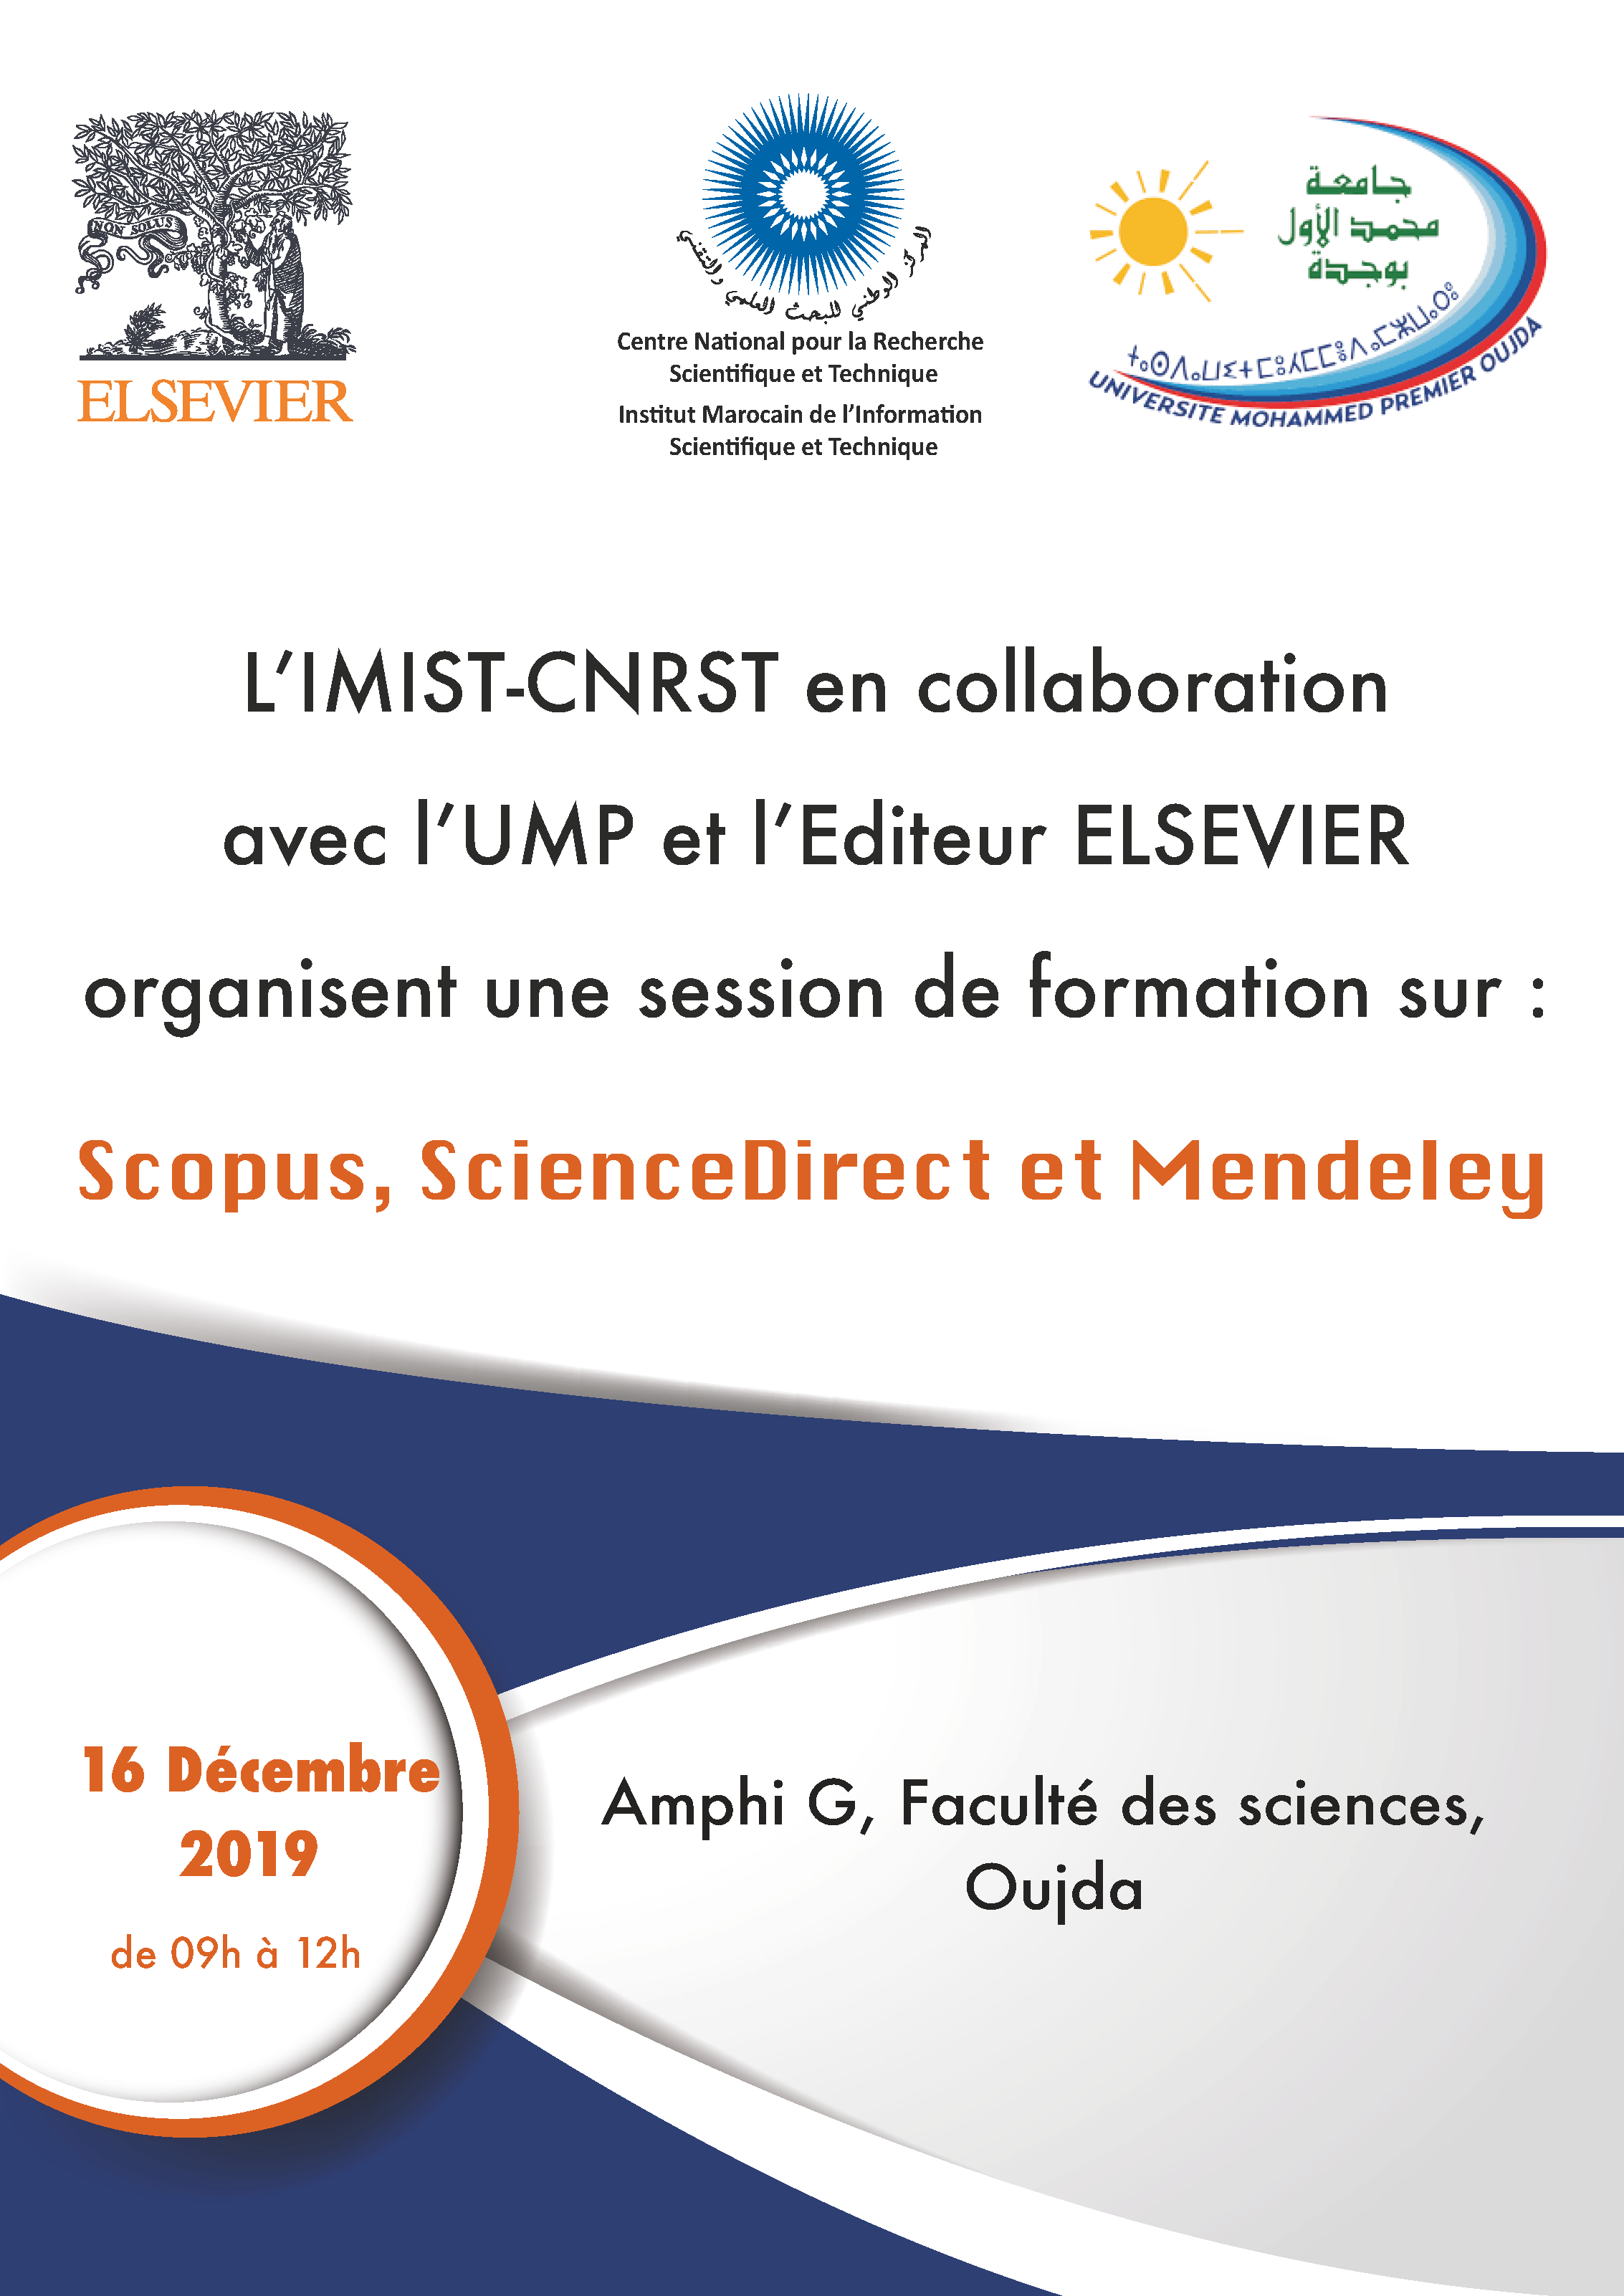 Session de Formation sur : Scopus, ScienceDirect et Mendeley